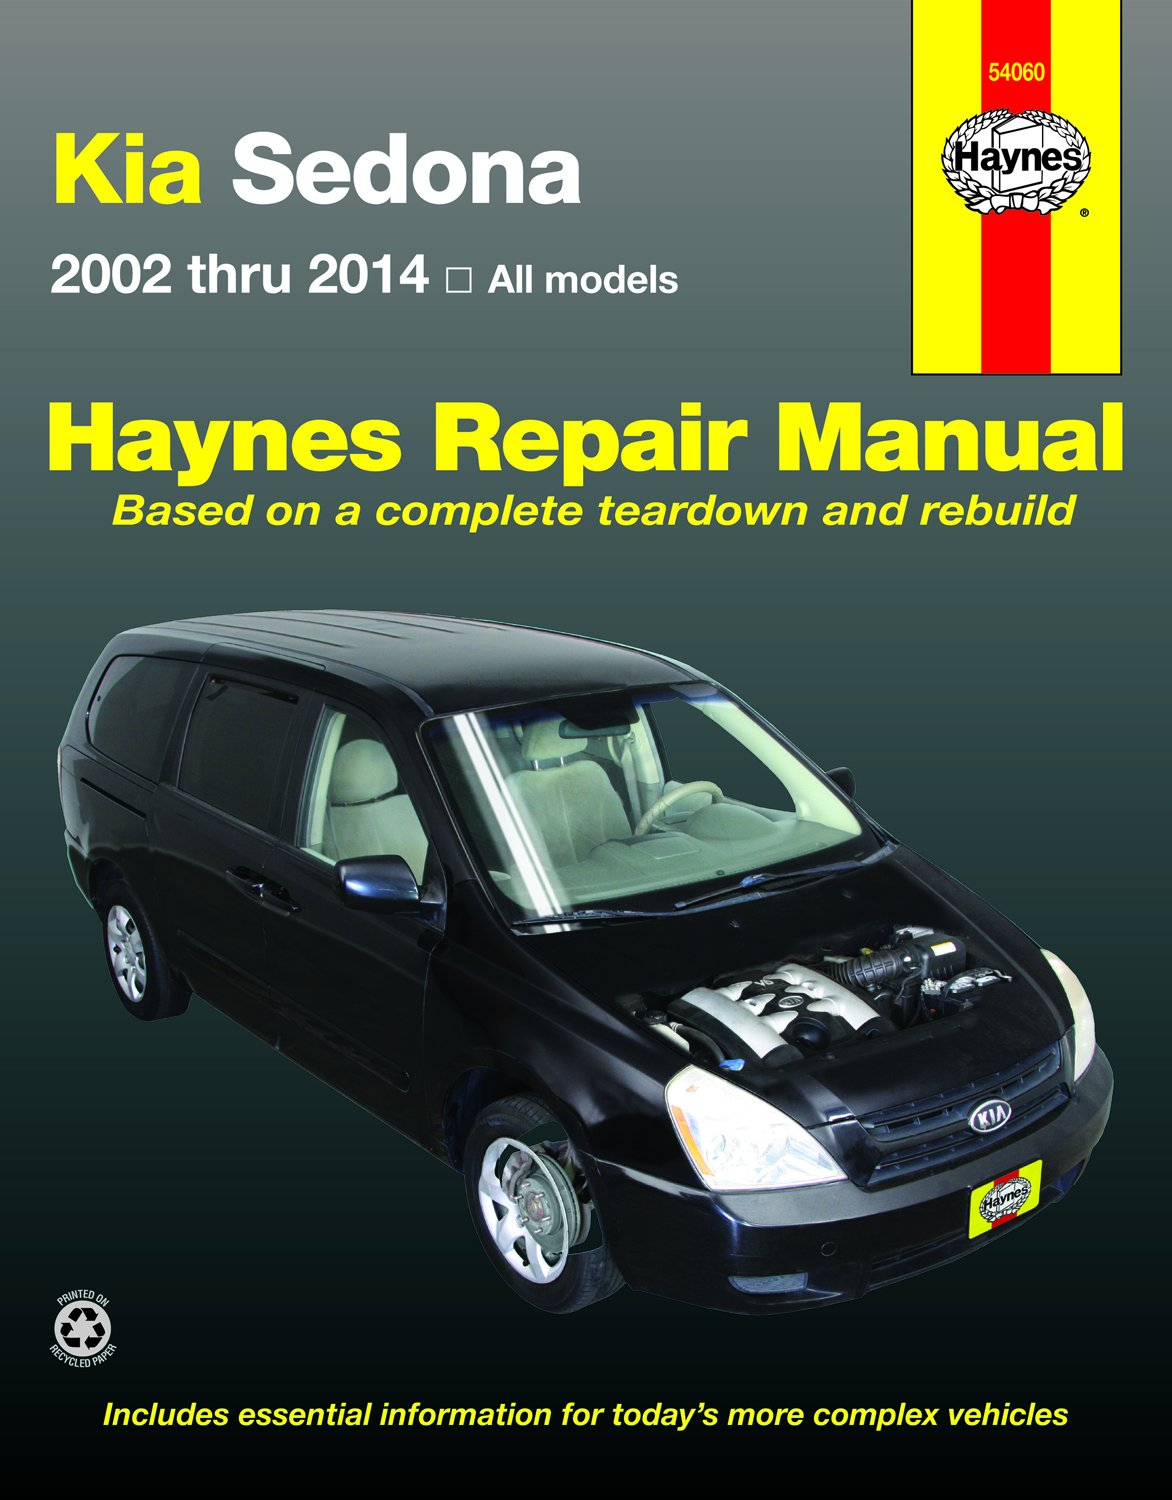 kia sedona repair manual 2002 14 haynes automotive amazon co uk rh amazon co uk 2017 Kia Sedona 2018 Kia Sedona